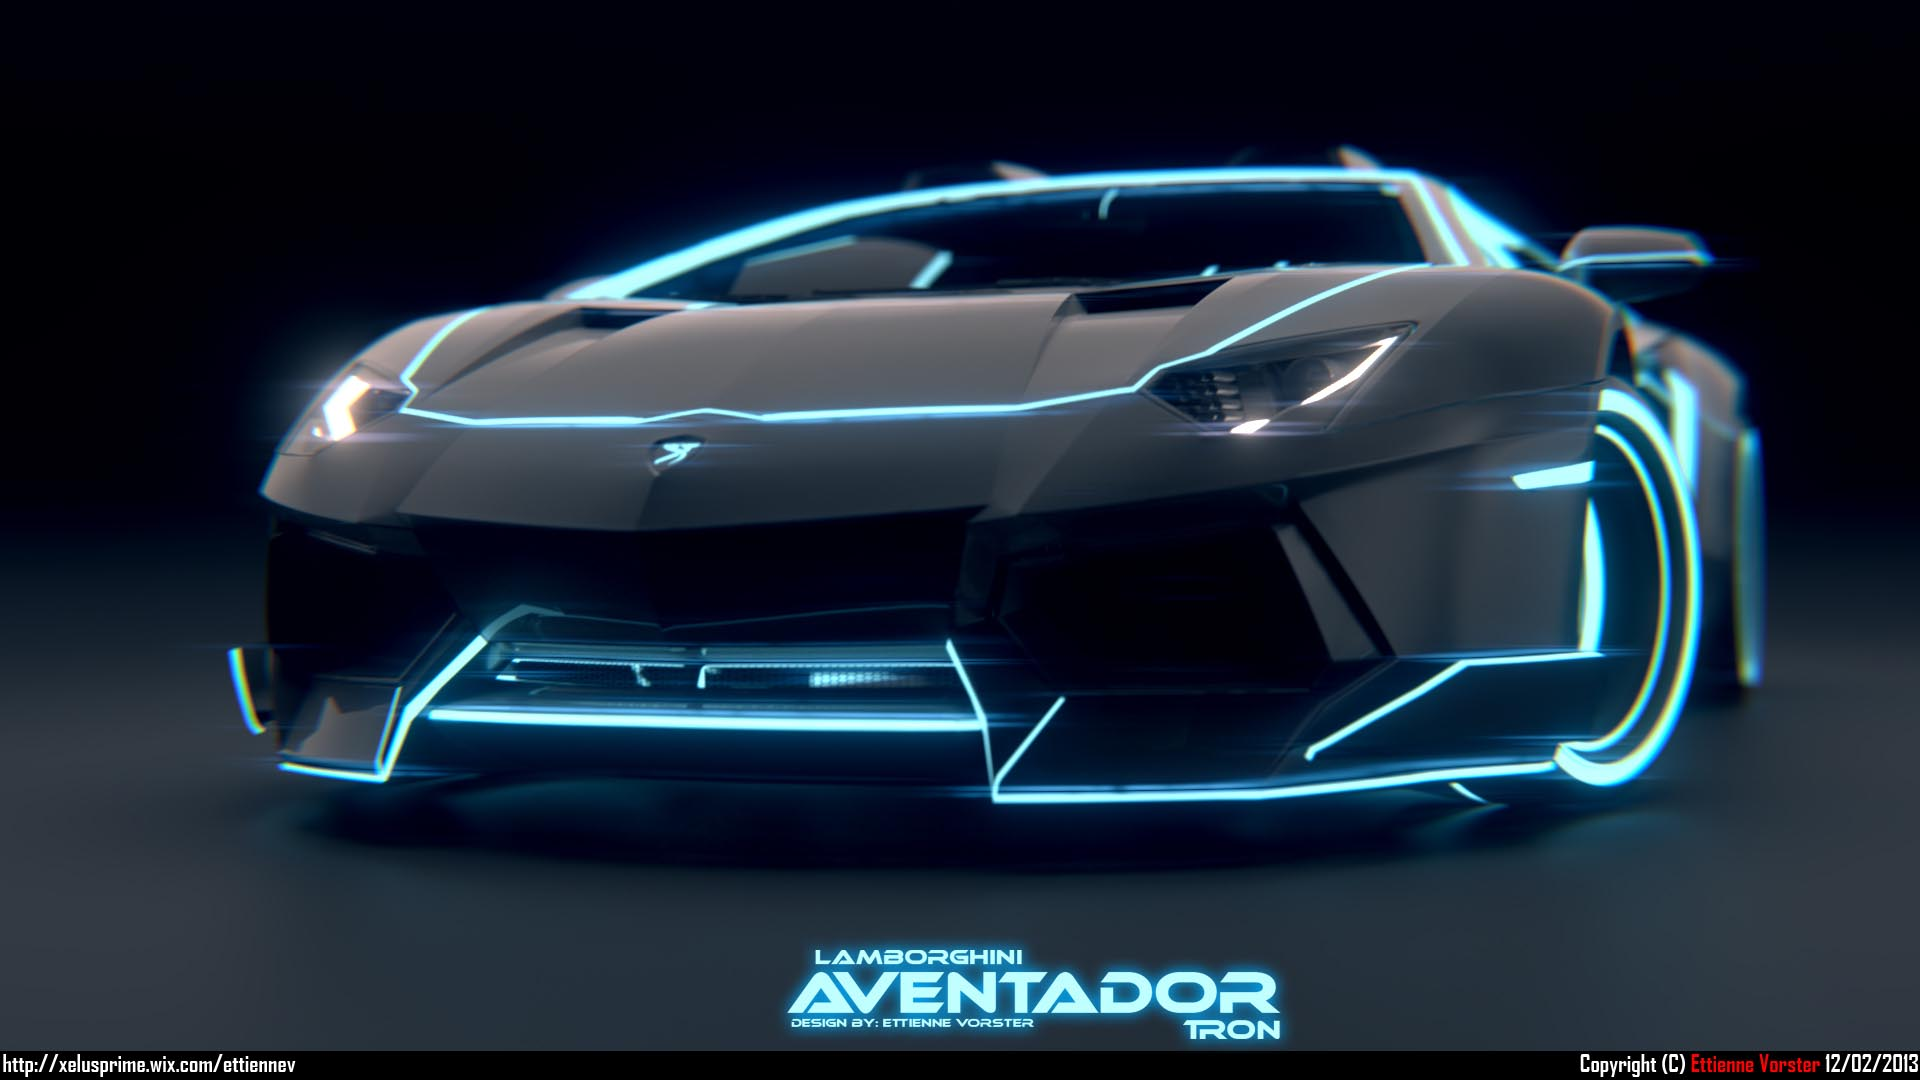 Download Lamborghini Live Wallpaper For Pc Gallery